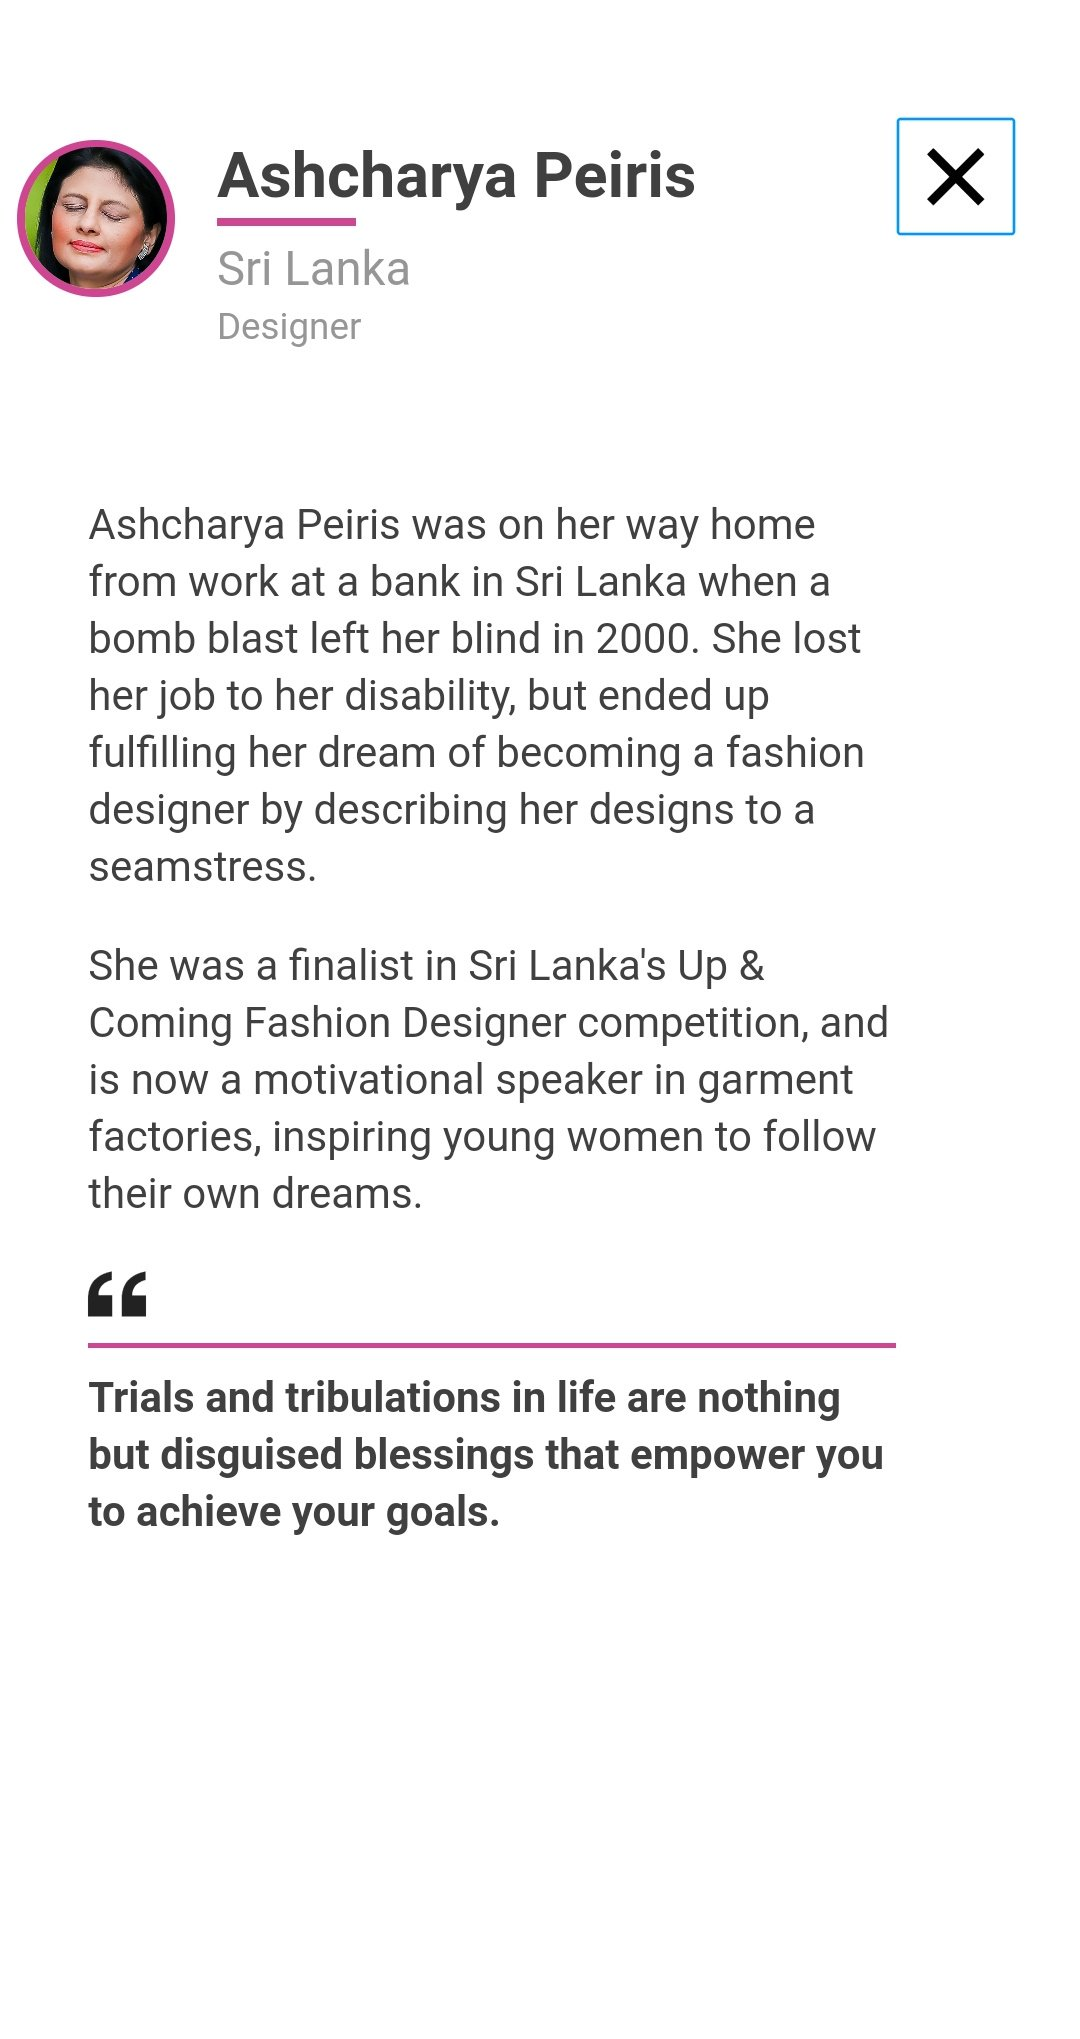 Inshaf Caffoor On Twitter Was Delighted To See The Name Of A Sri Lankan In The Top 100 But Was Awestruck To Hear Her Story Amazing Read Https T Co Kjcm8apj25 Lka Https T Co Qrw6s8avei